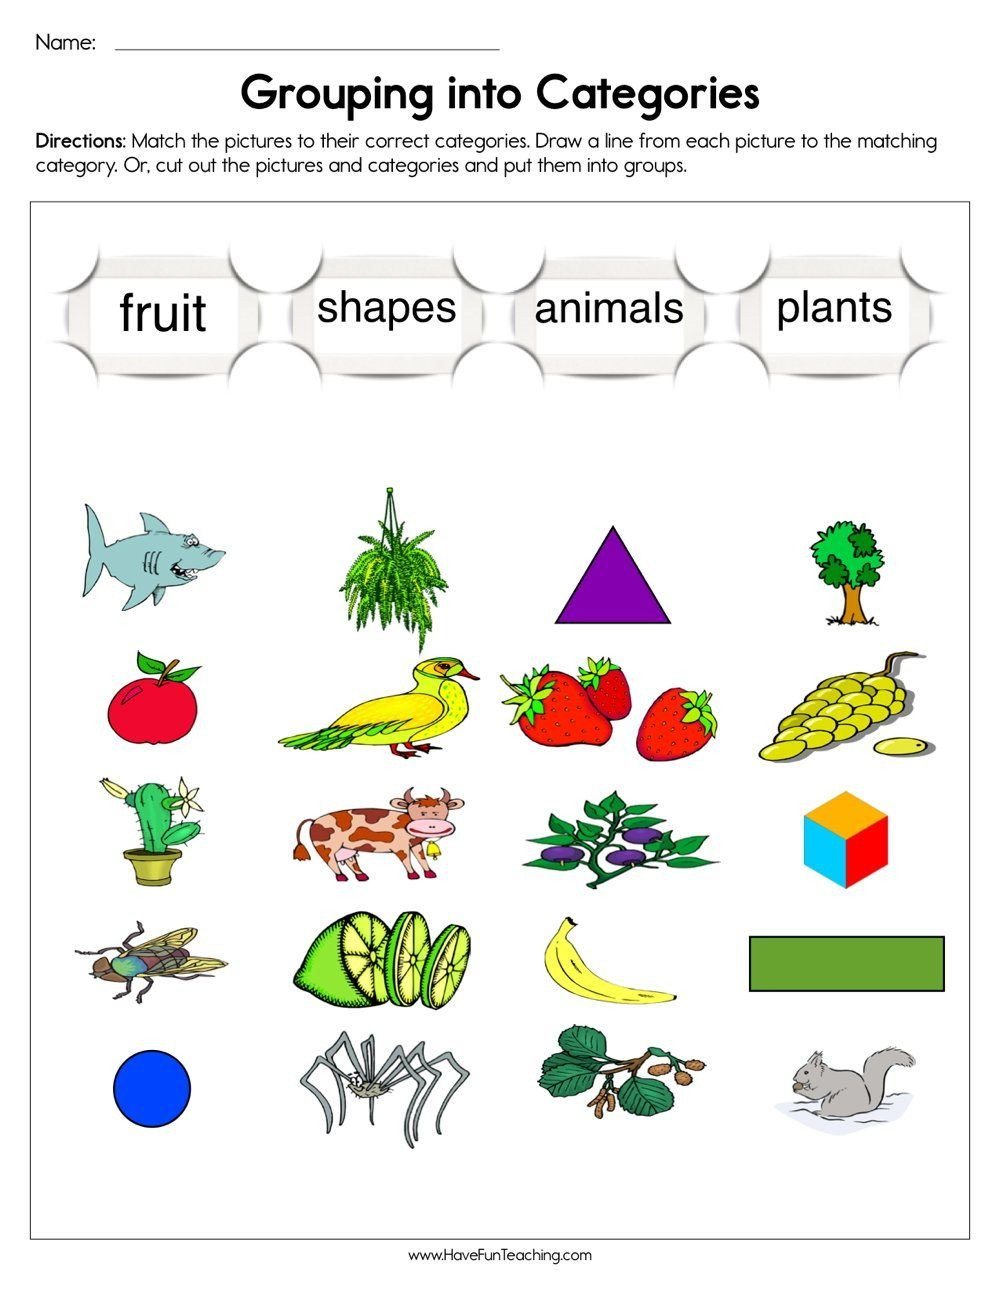 Grouping into Categories Worksheet in 2020